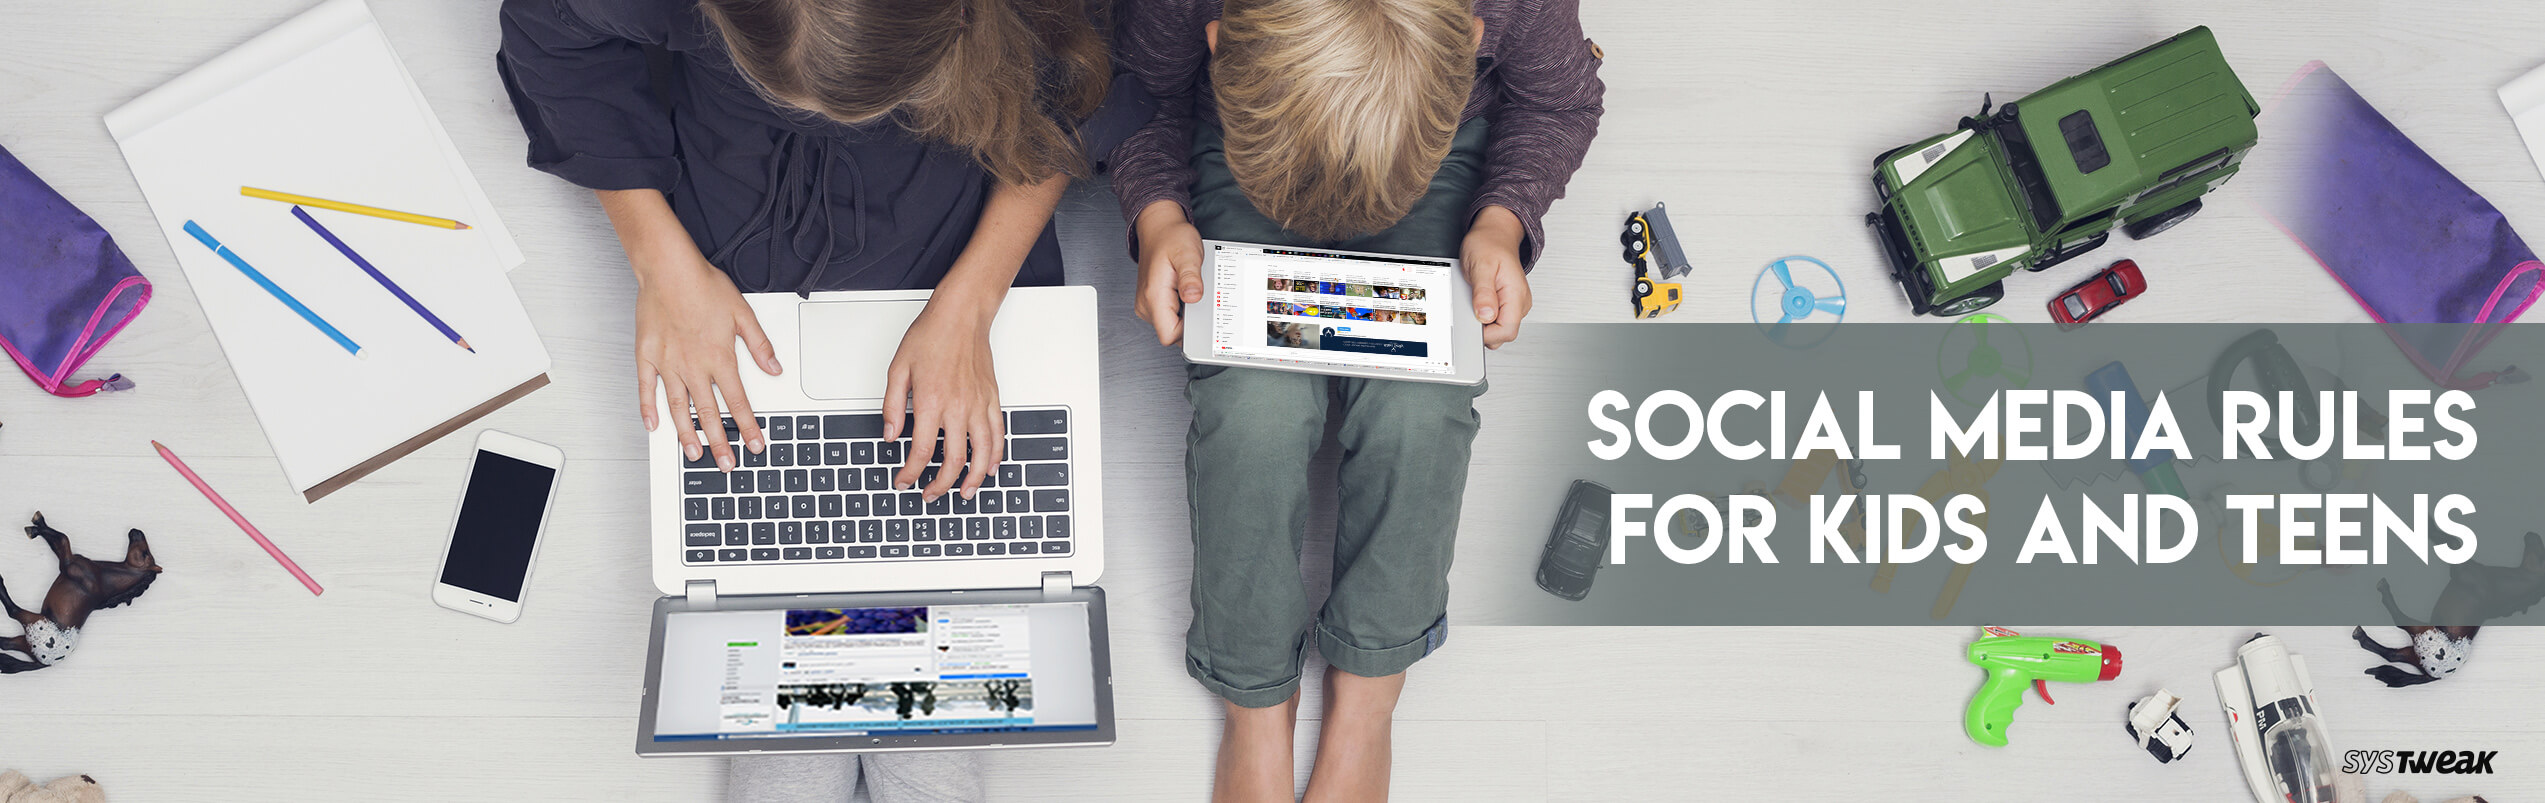 Social Media Rules for Kids and Teens for their Safety, Privacy and Security